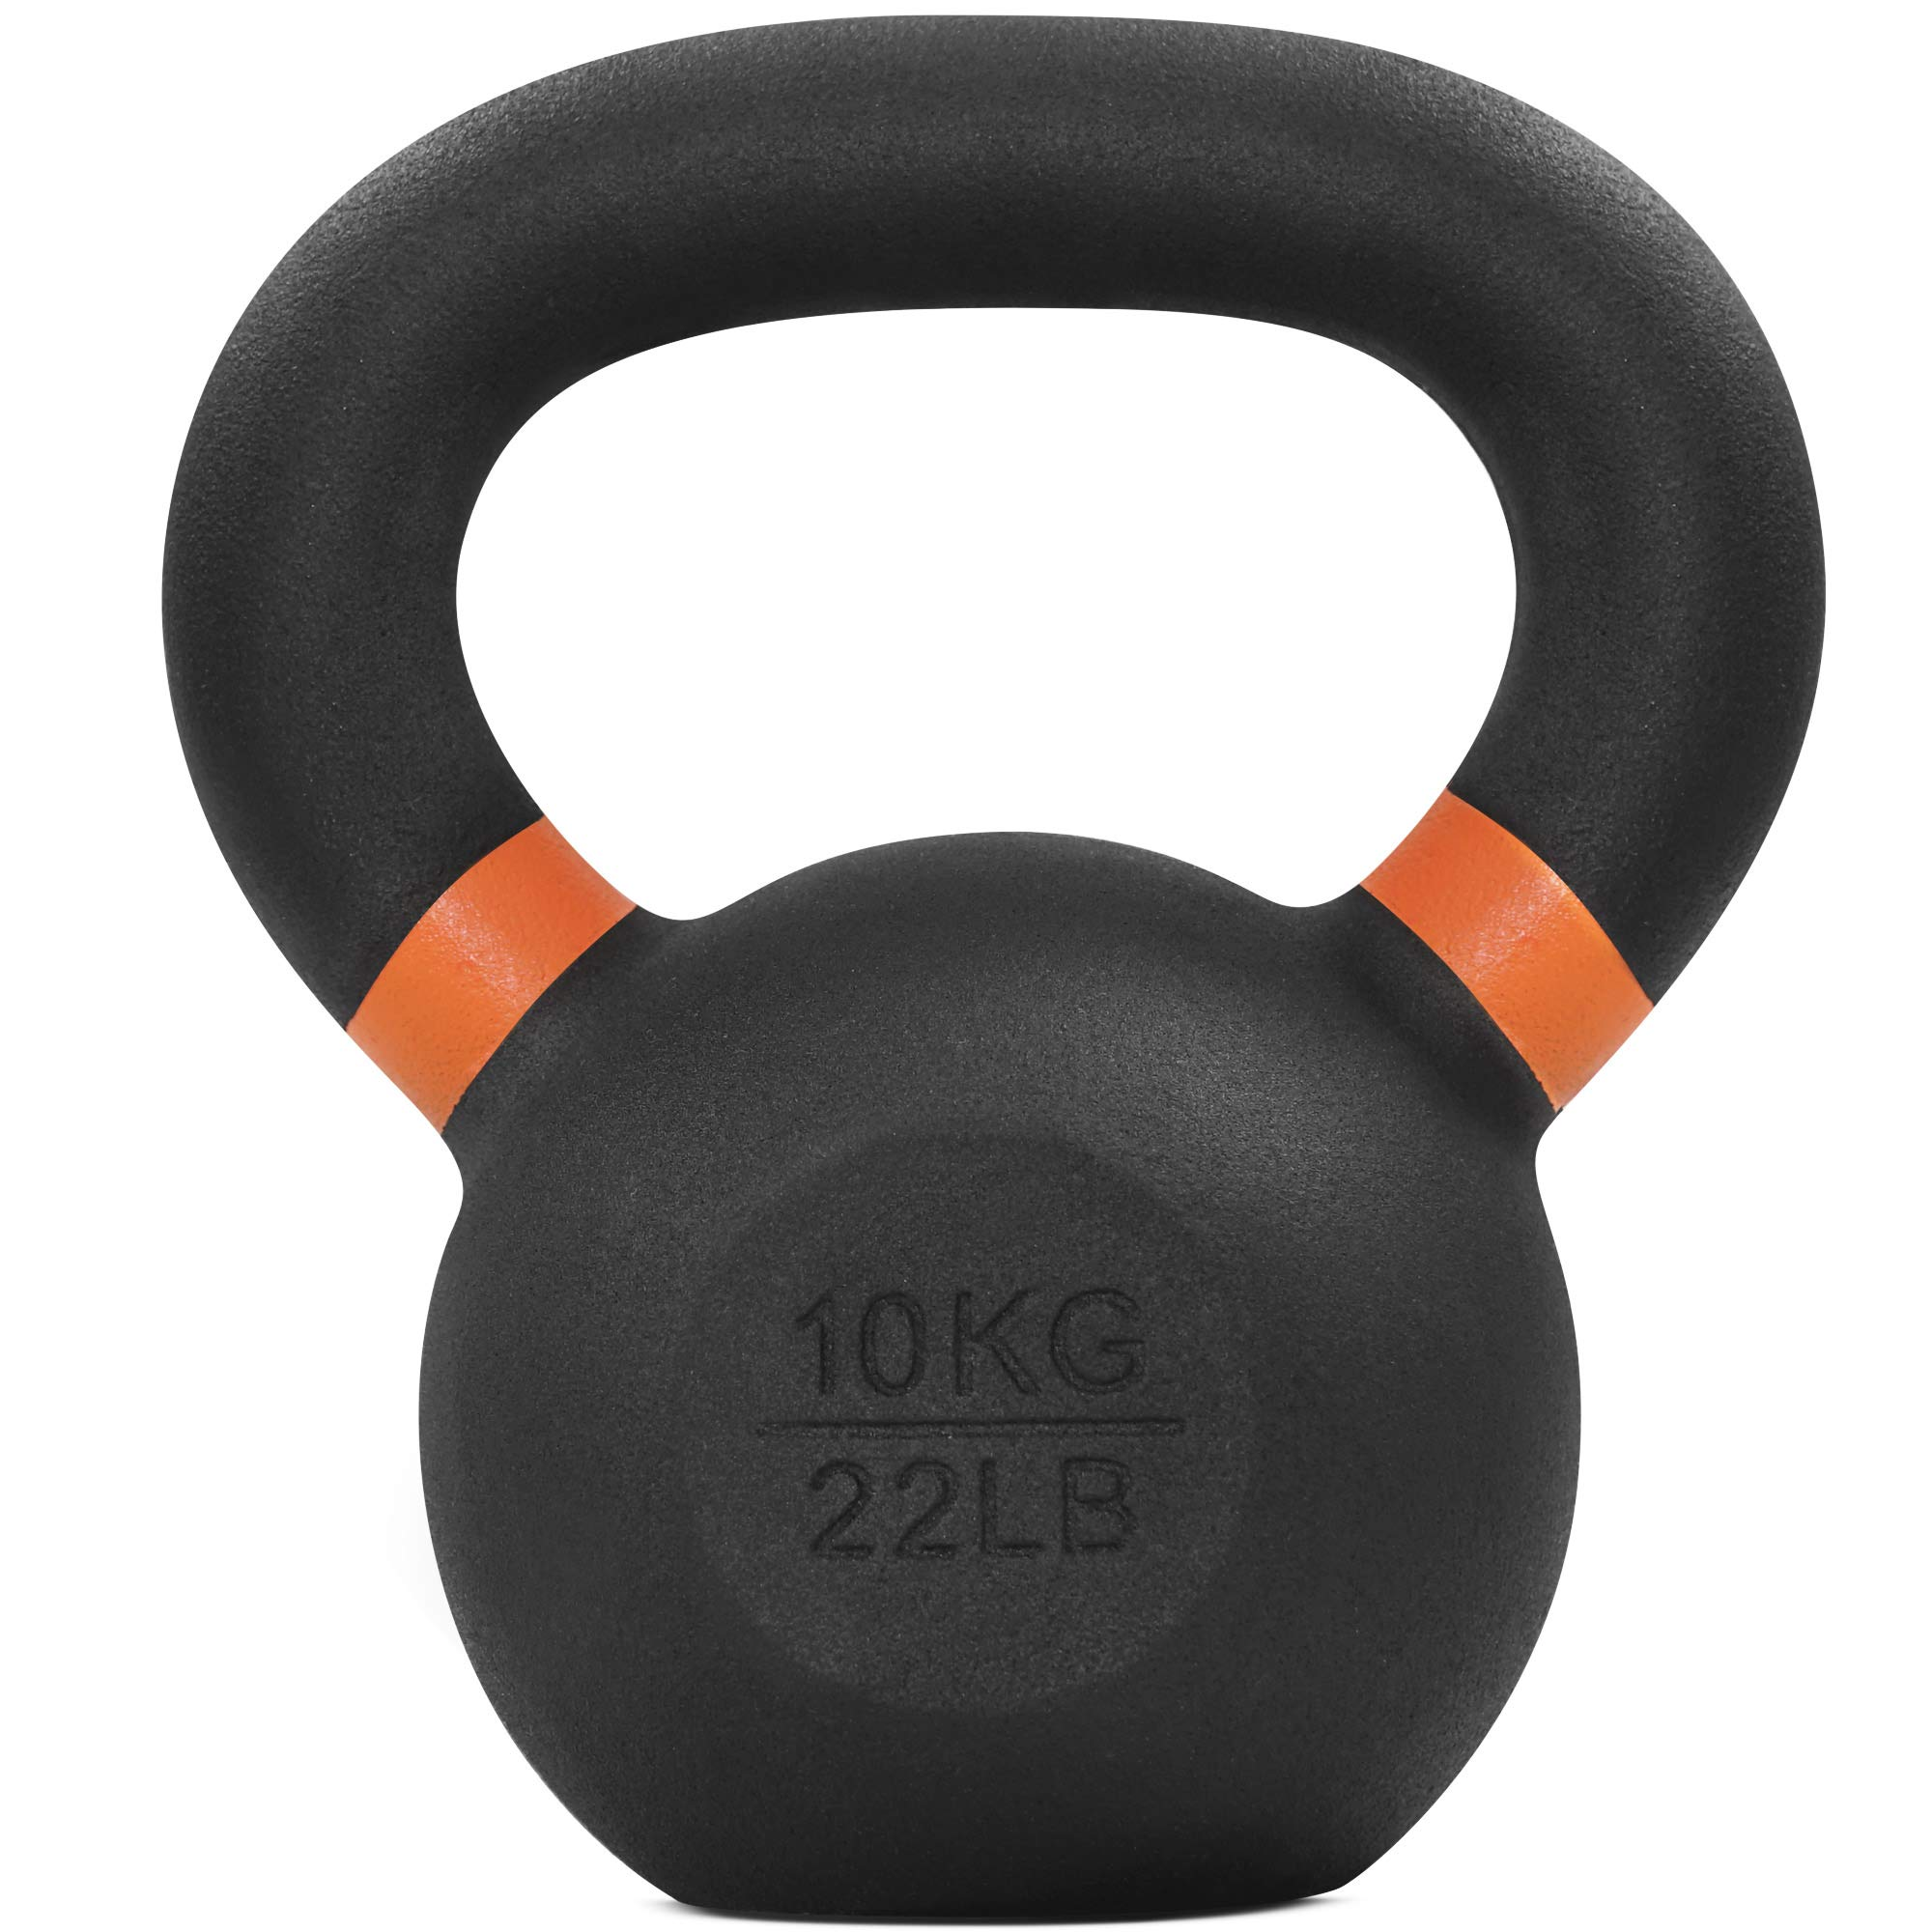 Yes4All Powder Coat Kettlebell Weights with Wide Handles & Flat Bottoms – 10kg/22lbs Cast Iron Kettlebells for Strength, Conditioning & Cross-Training